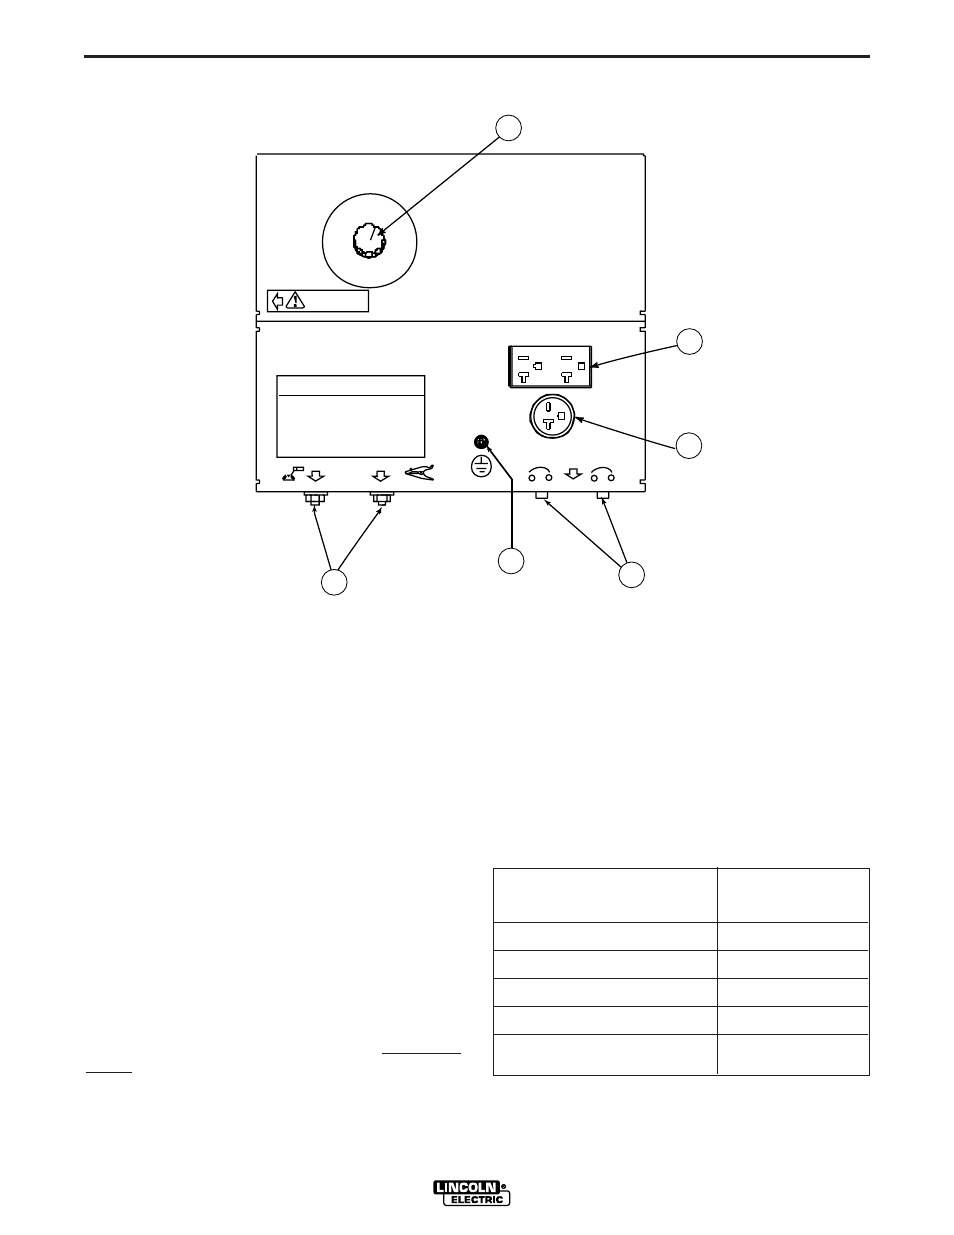 Installation, Electrical output connections, Welding cable